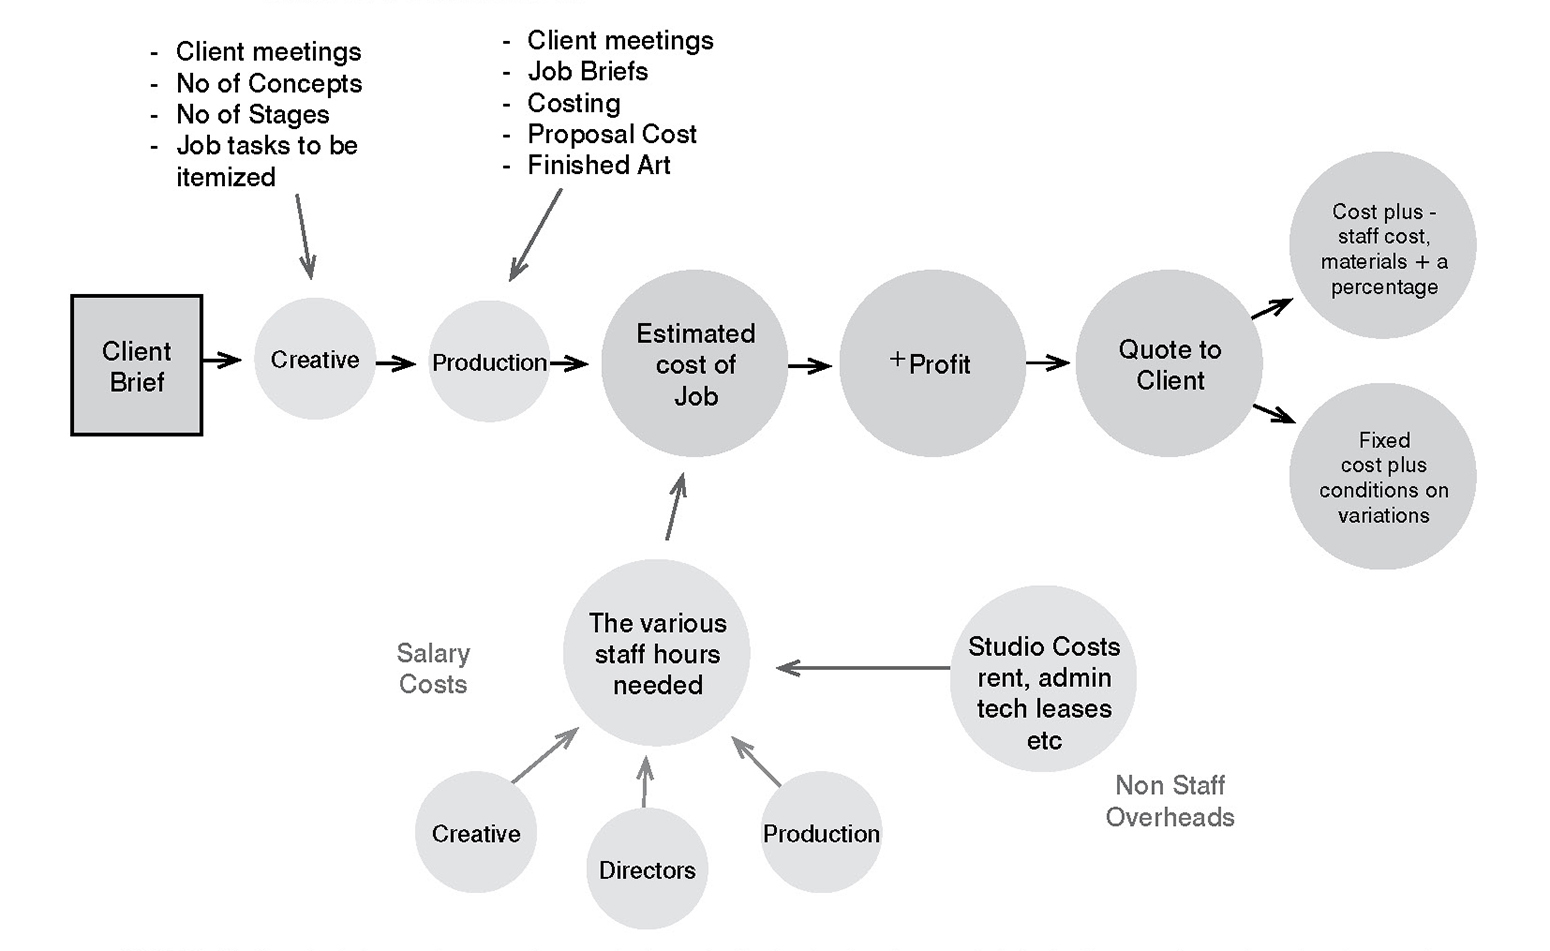 Helping on developing studio processes, highlighting the value of creative outcomes, time, cost.